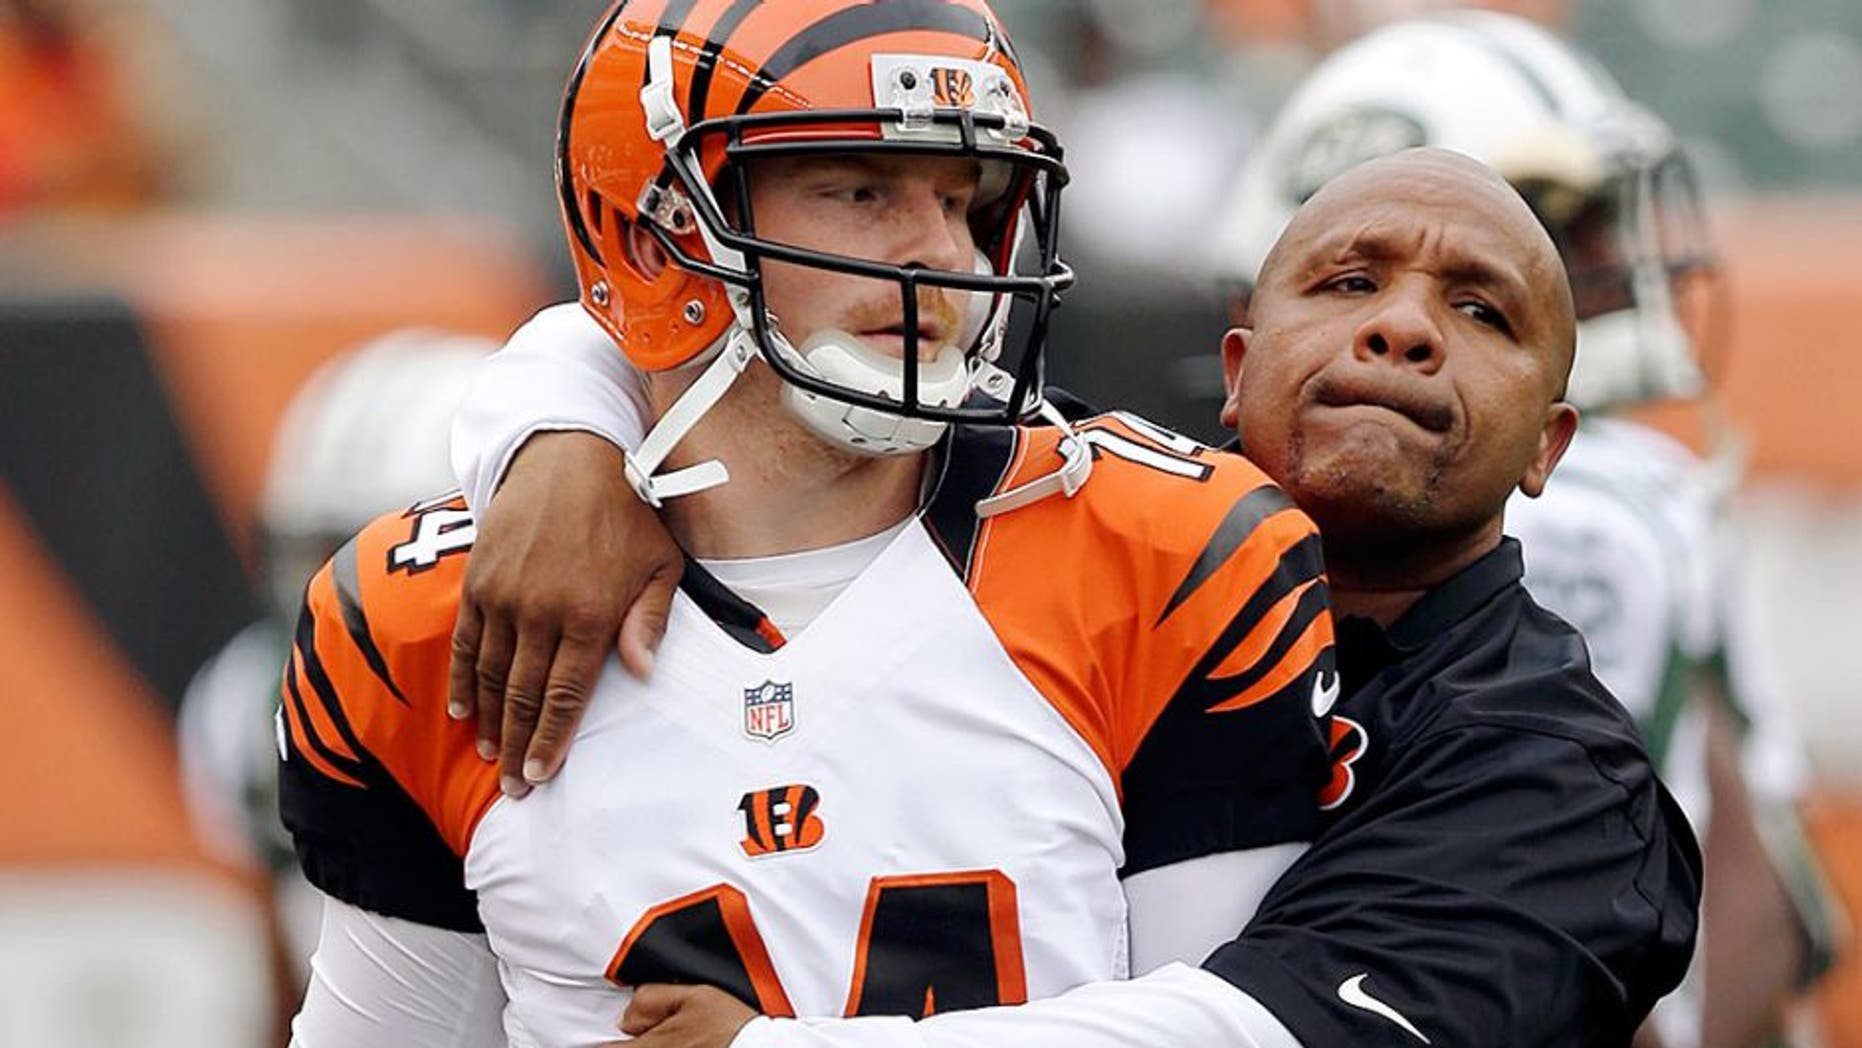 Cincinnati Bengals offensive coordinator Hue Jackson hugs quarterback Andy Dalton (14) prior to an NFL preseason football game against the New York Jets, Saturday, Aug. 16, 2014, in Cincinnati. (AP Photo/Al Behrman)